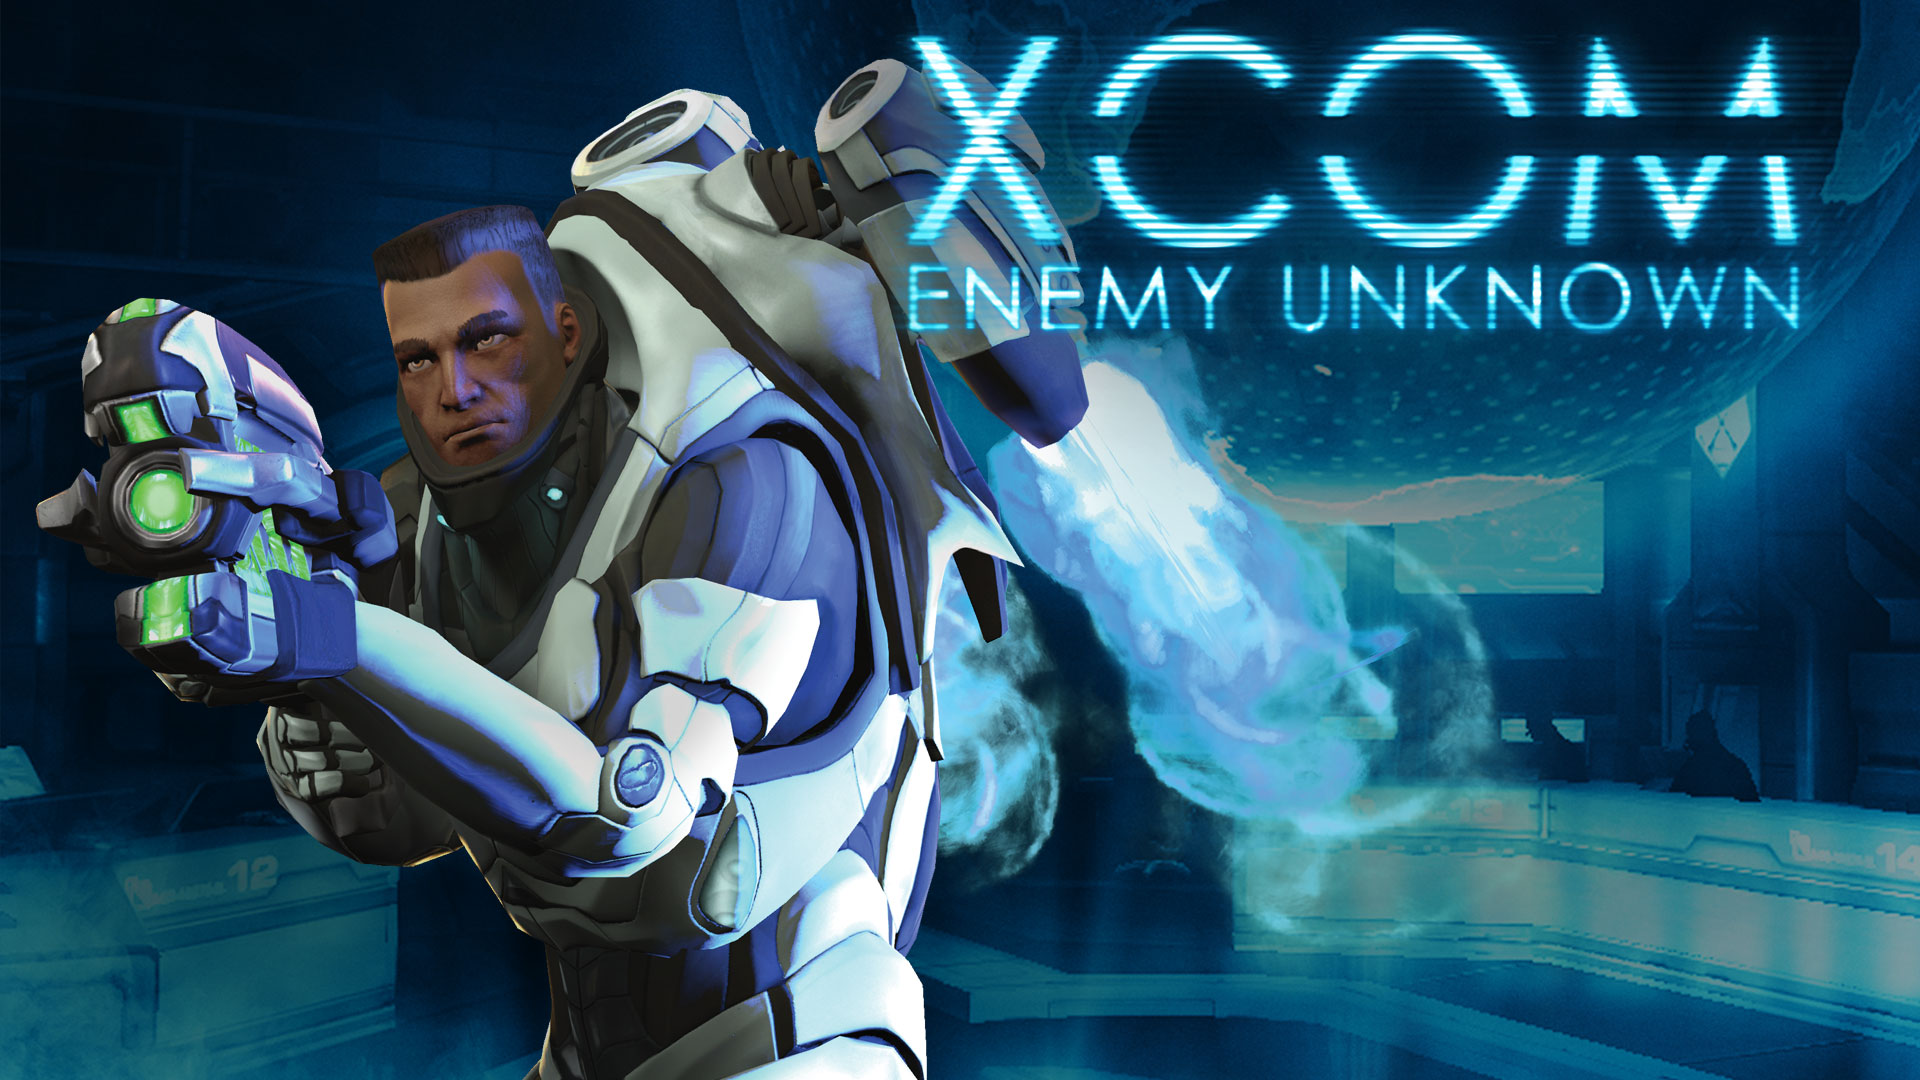 image - xcom enemy unknown artwork 9 | steam trading cards wiki